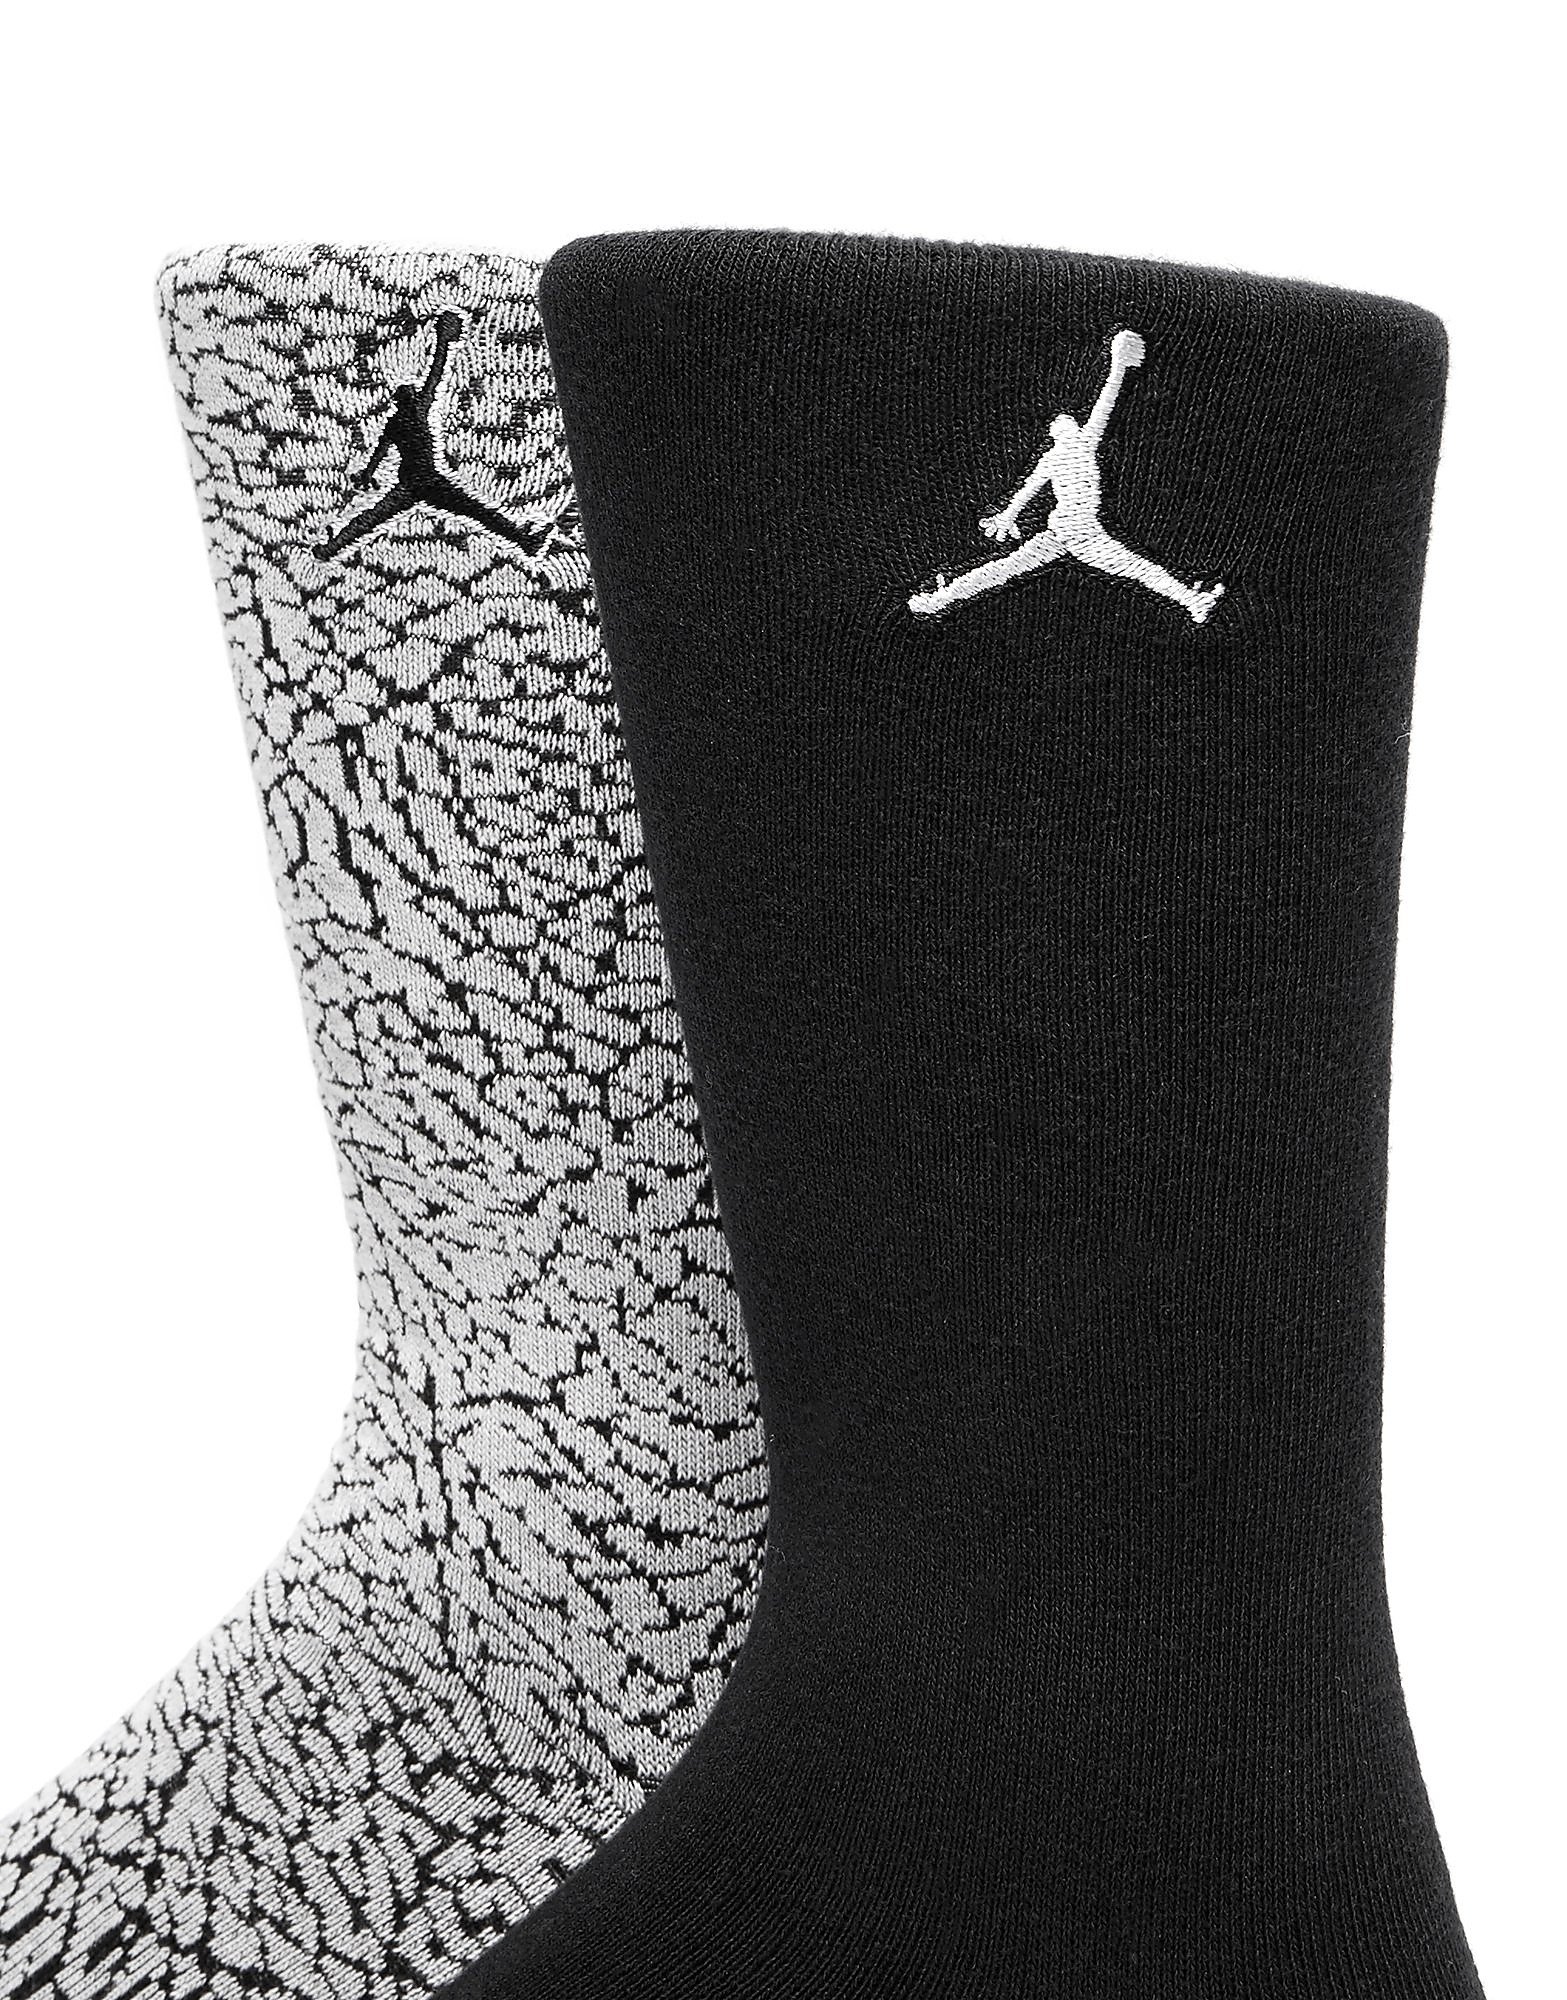 Jordan 2 Pack Elephant Print Socks